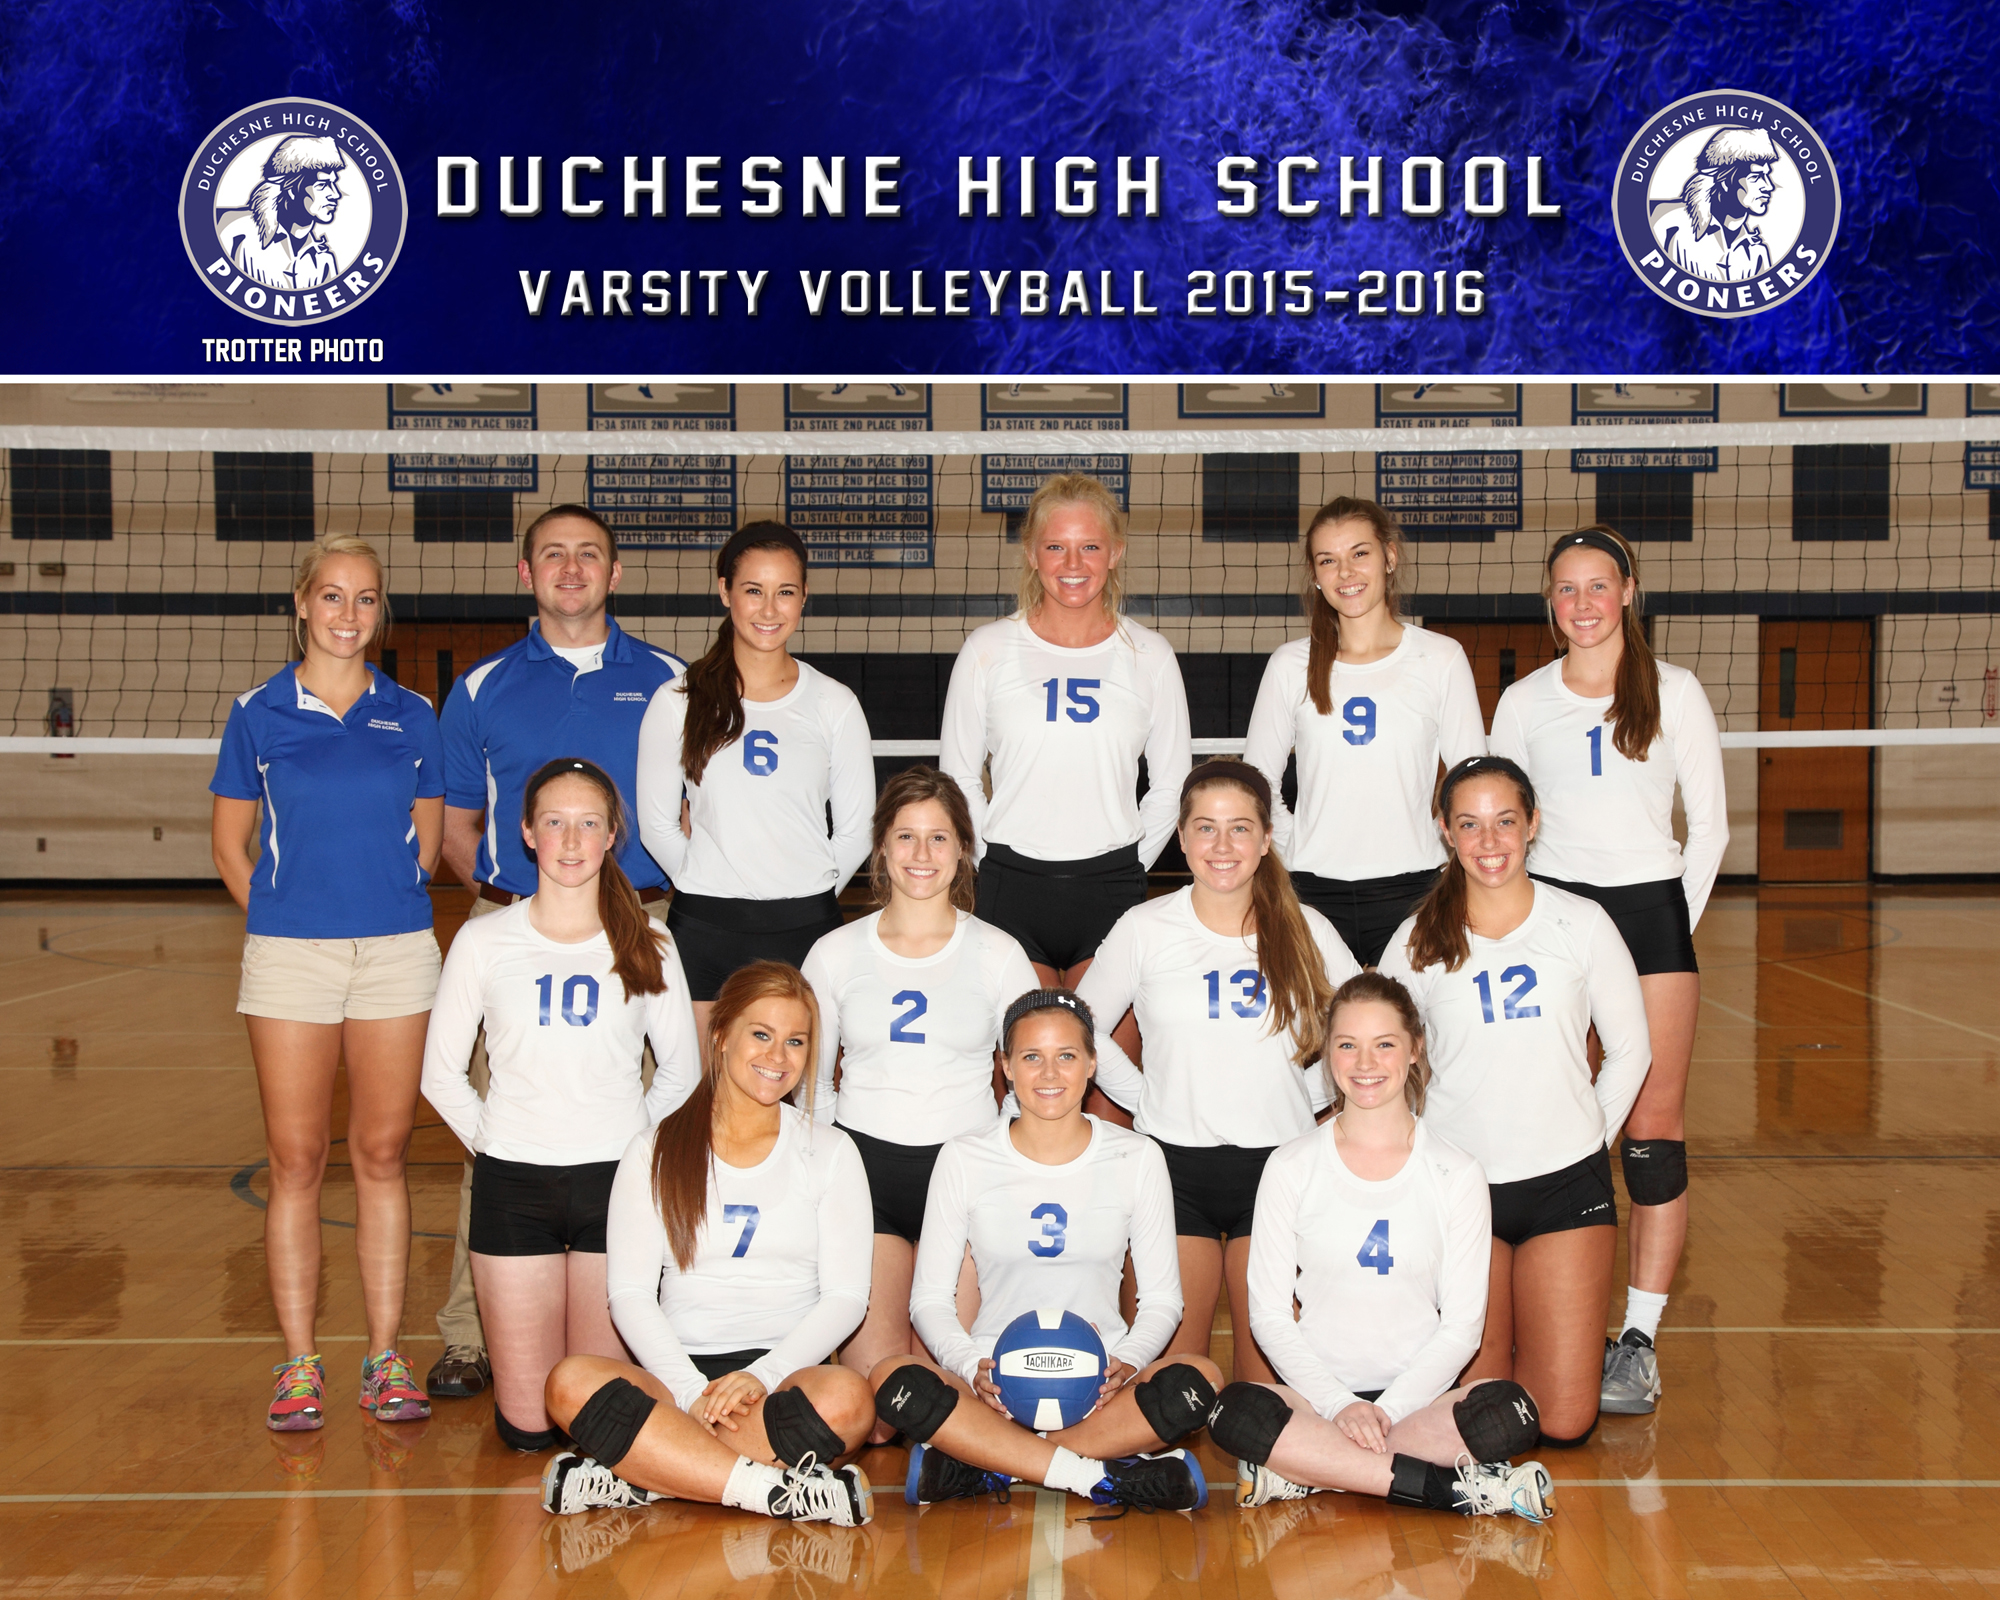 Duchesne High School Soccer Schedule Duchesne High School Girls Volleyball